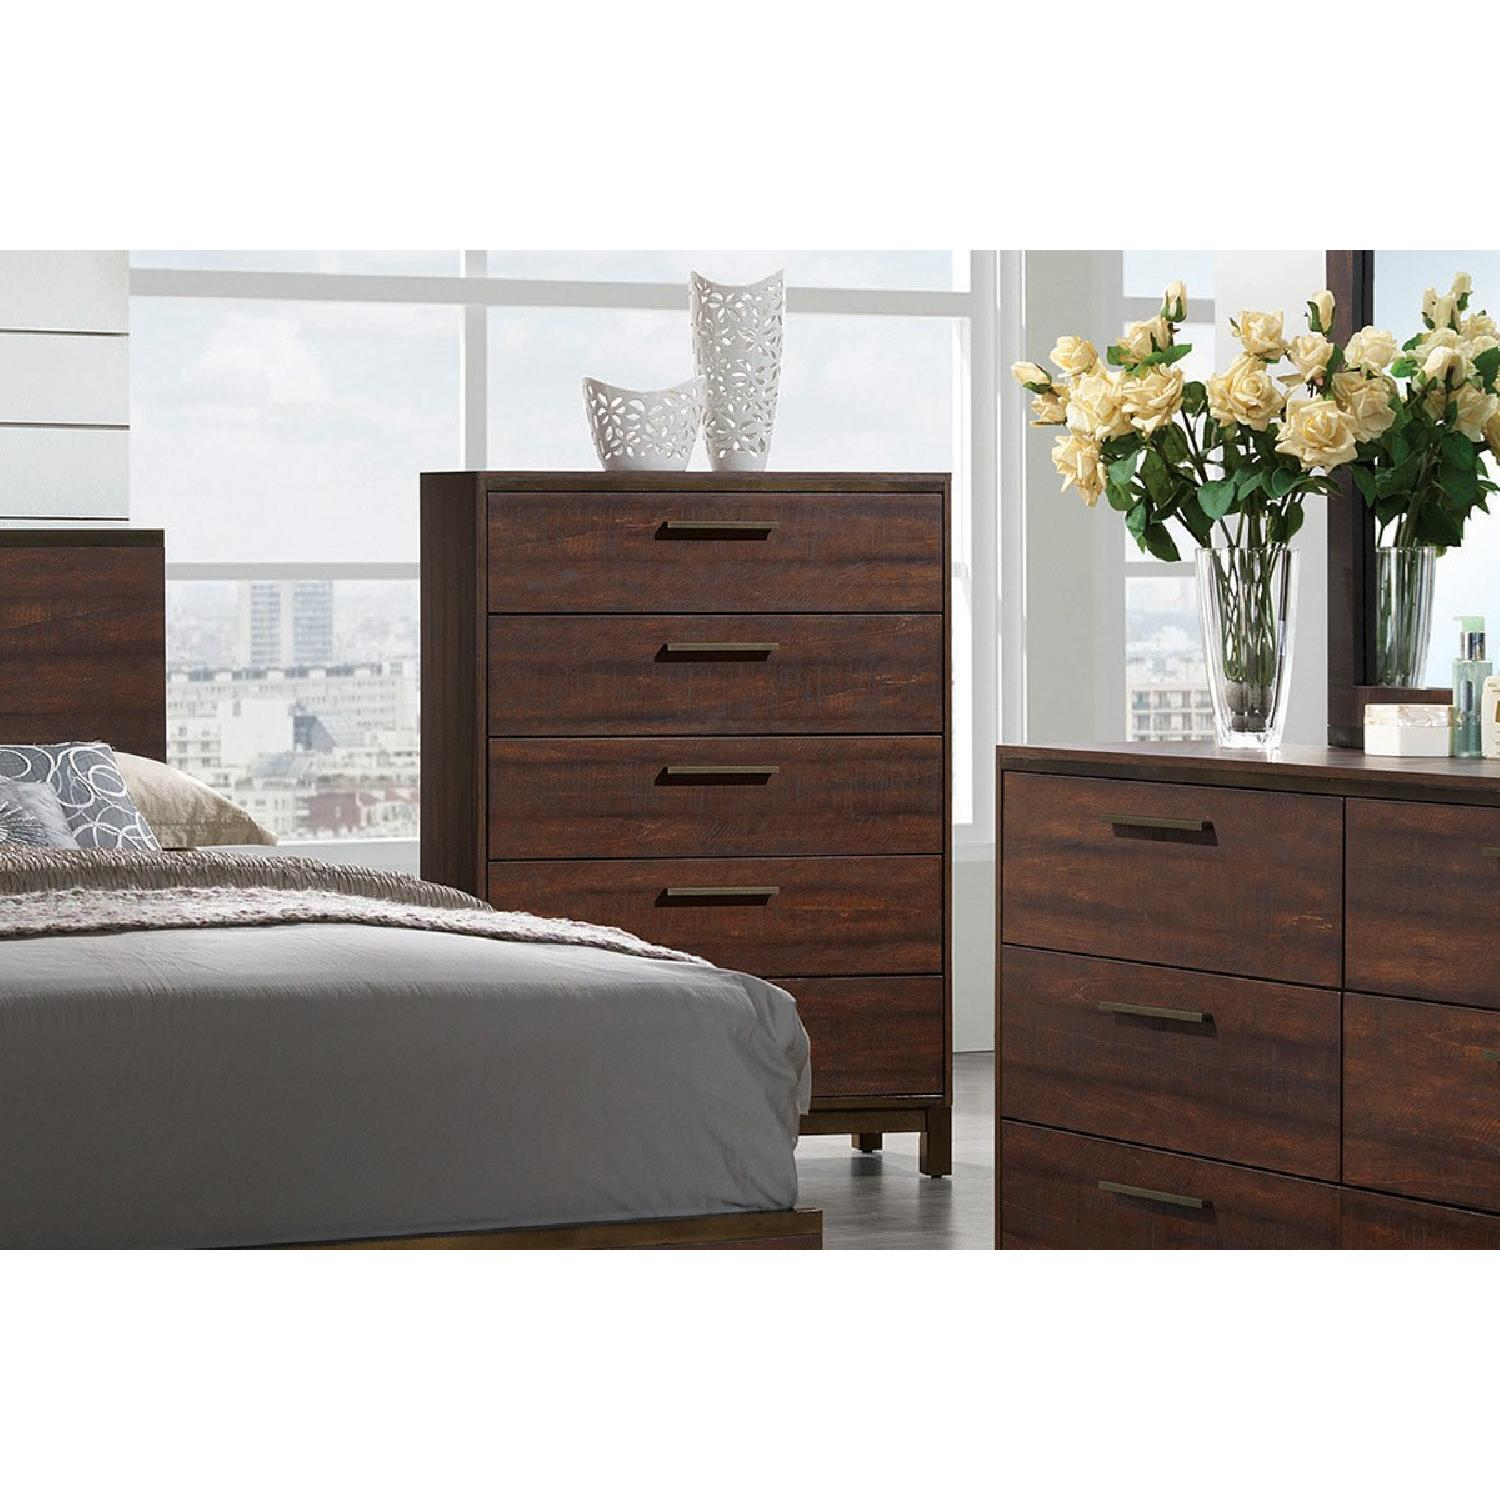 Modern 5-Drawer Chest in Rustic Tobacco Finish - image-1